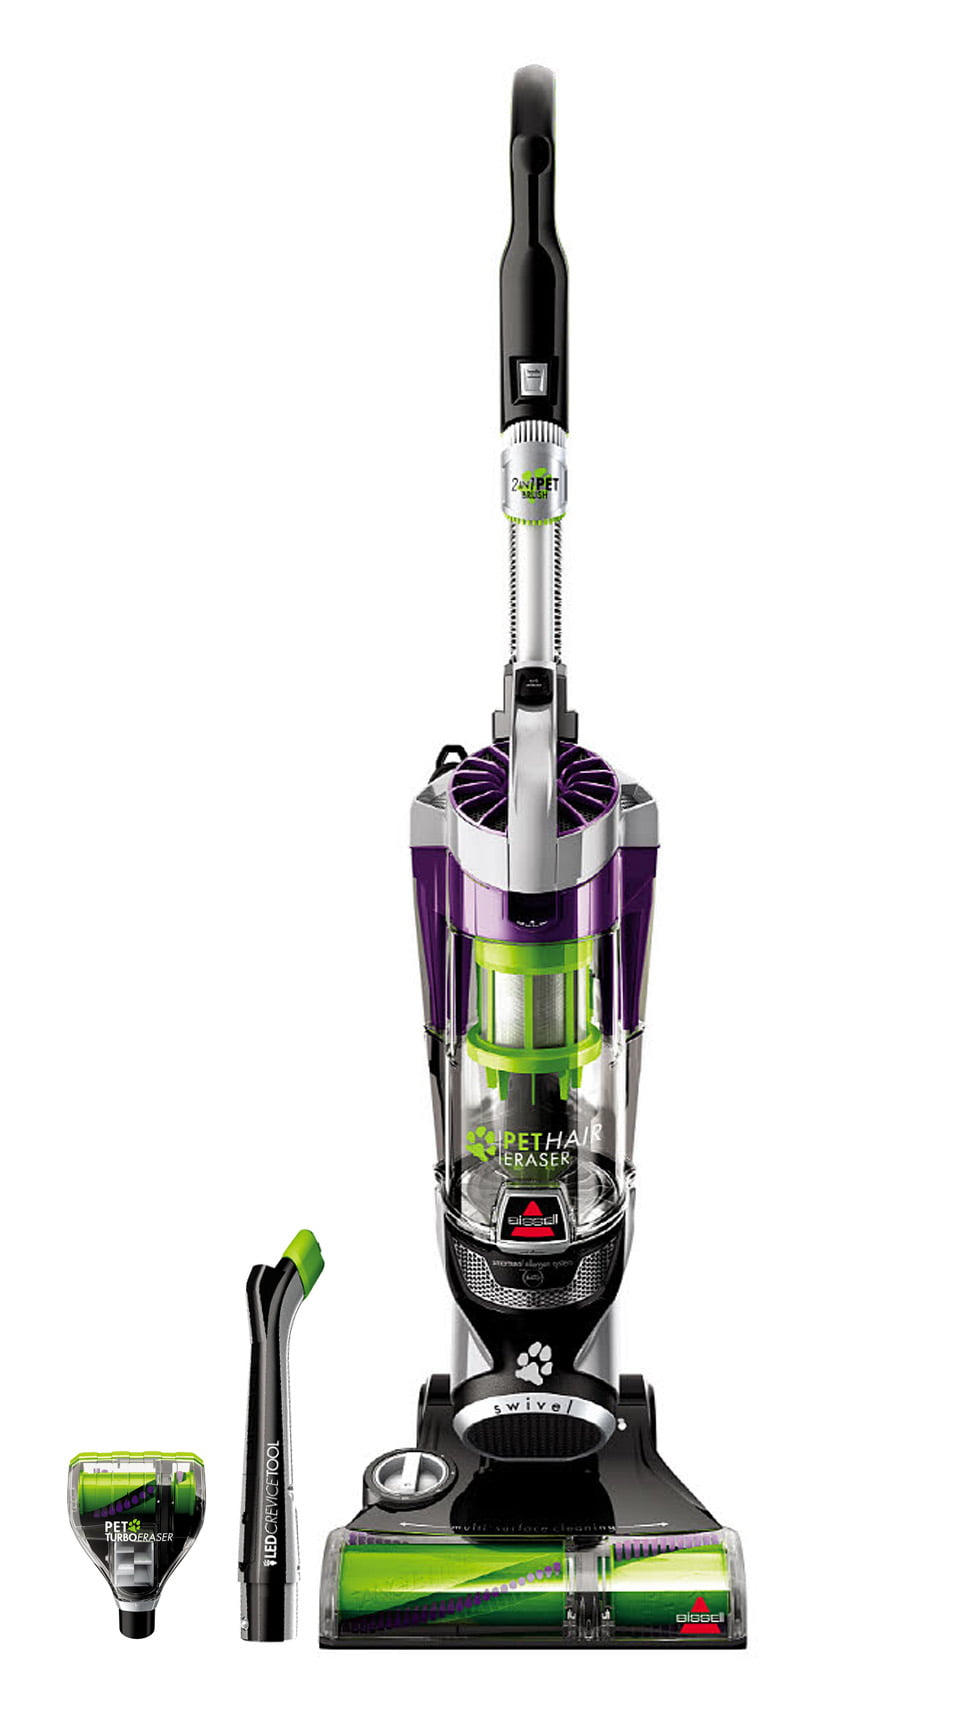 Bissell Pet Hair Eraser Upright Vacuum, 1650W by Bissell